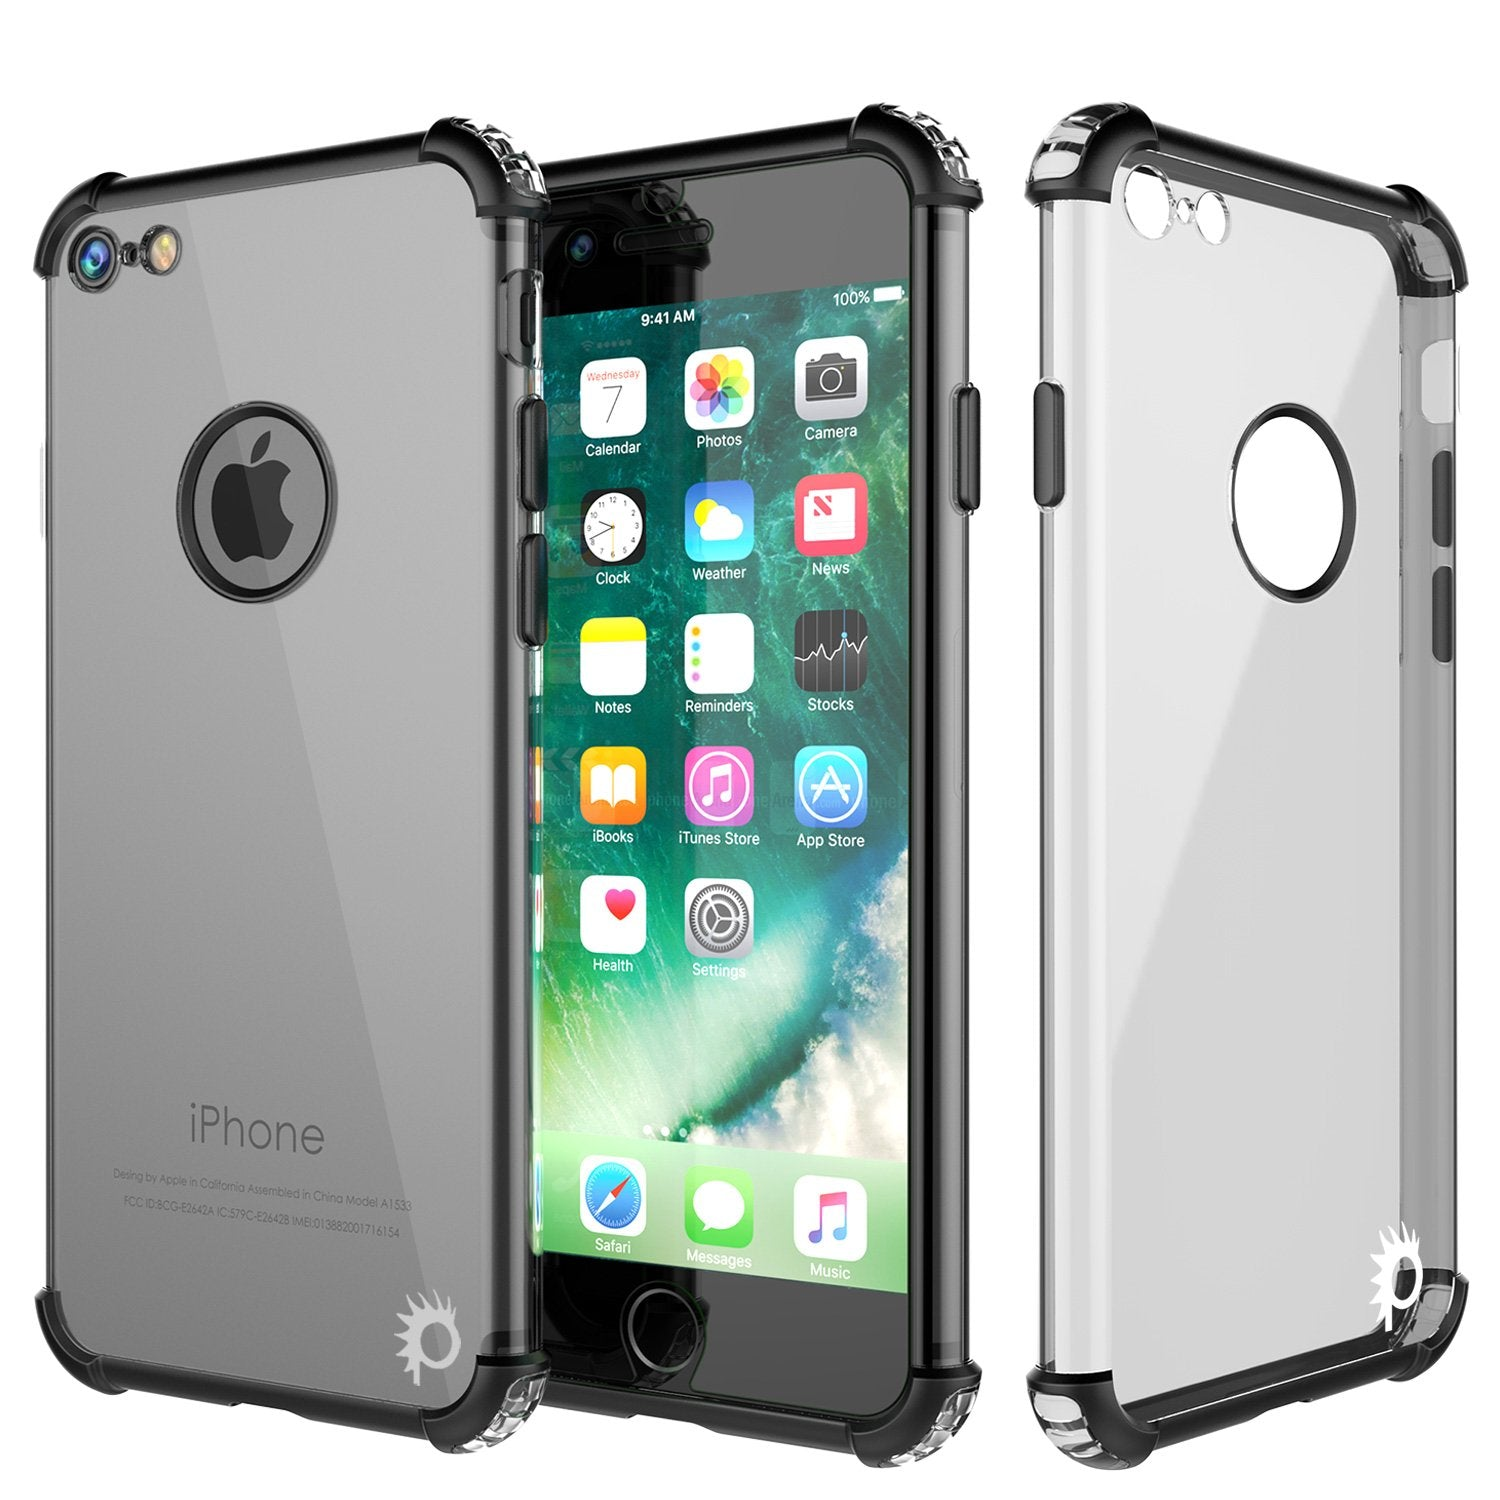 iPhone 8 Case, Punkcase [BLAZE SERIES] Protective Cover W/ PunkShield Screen Protector [Shockproof] [Slim Fit] for Apple iPhone [Silver]